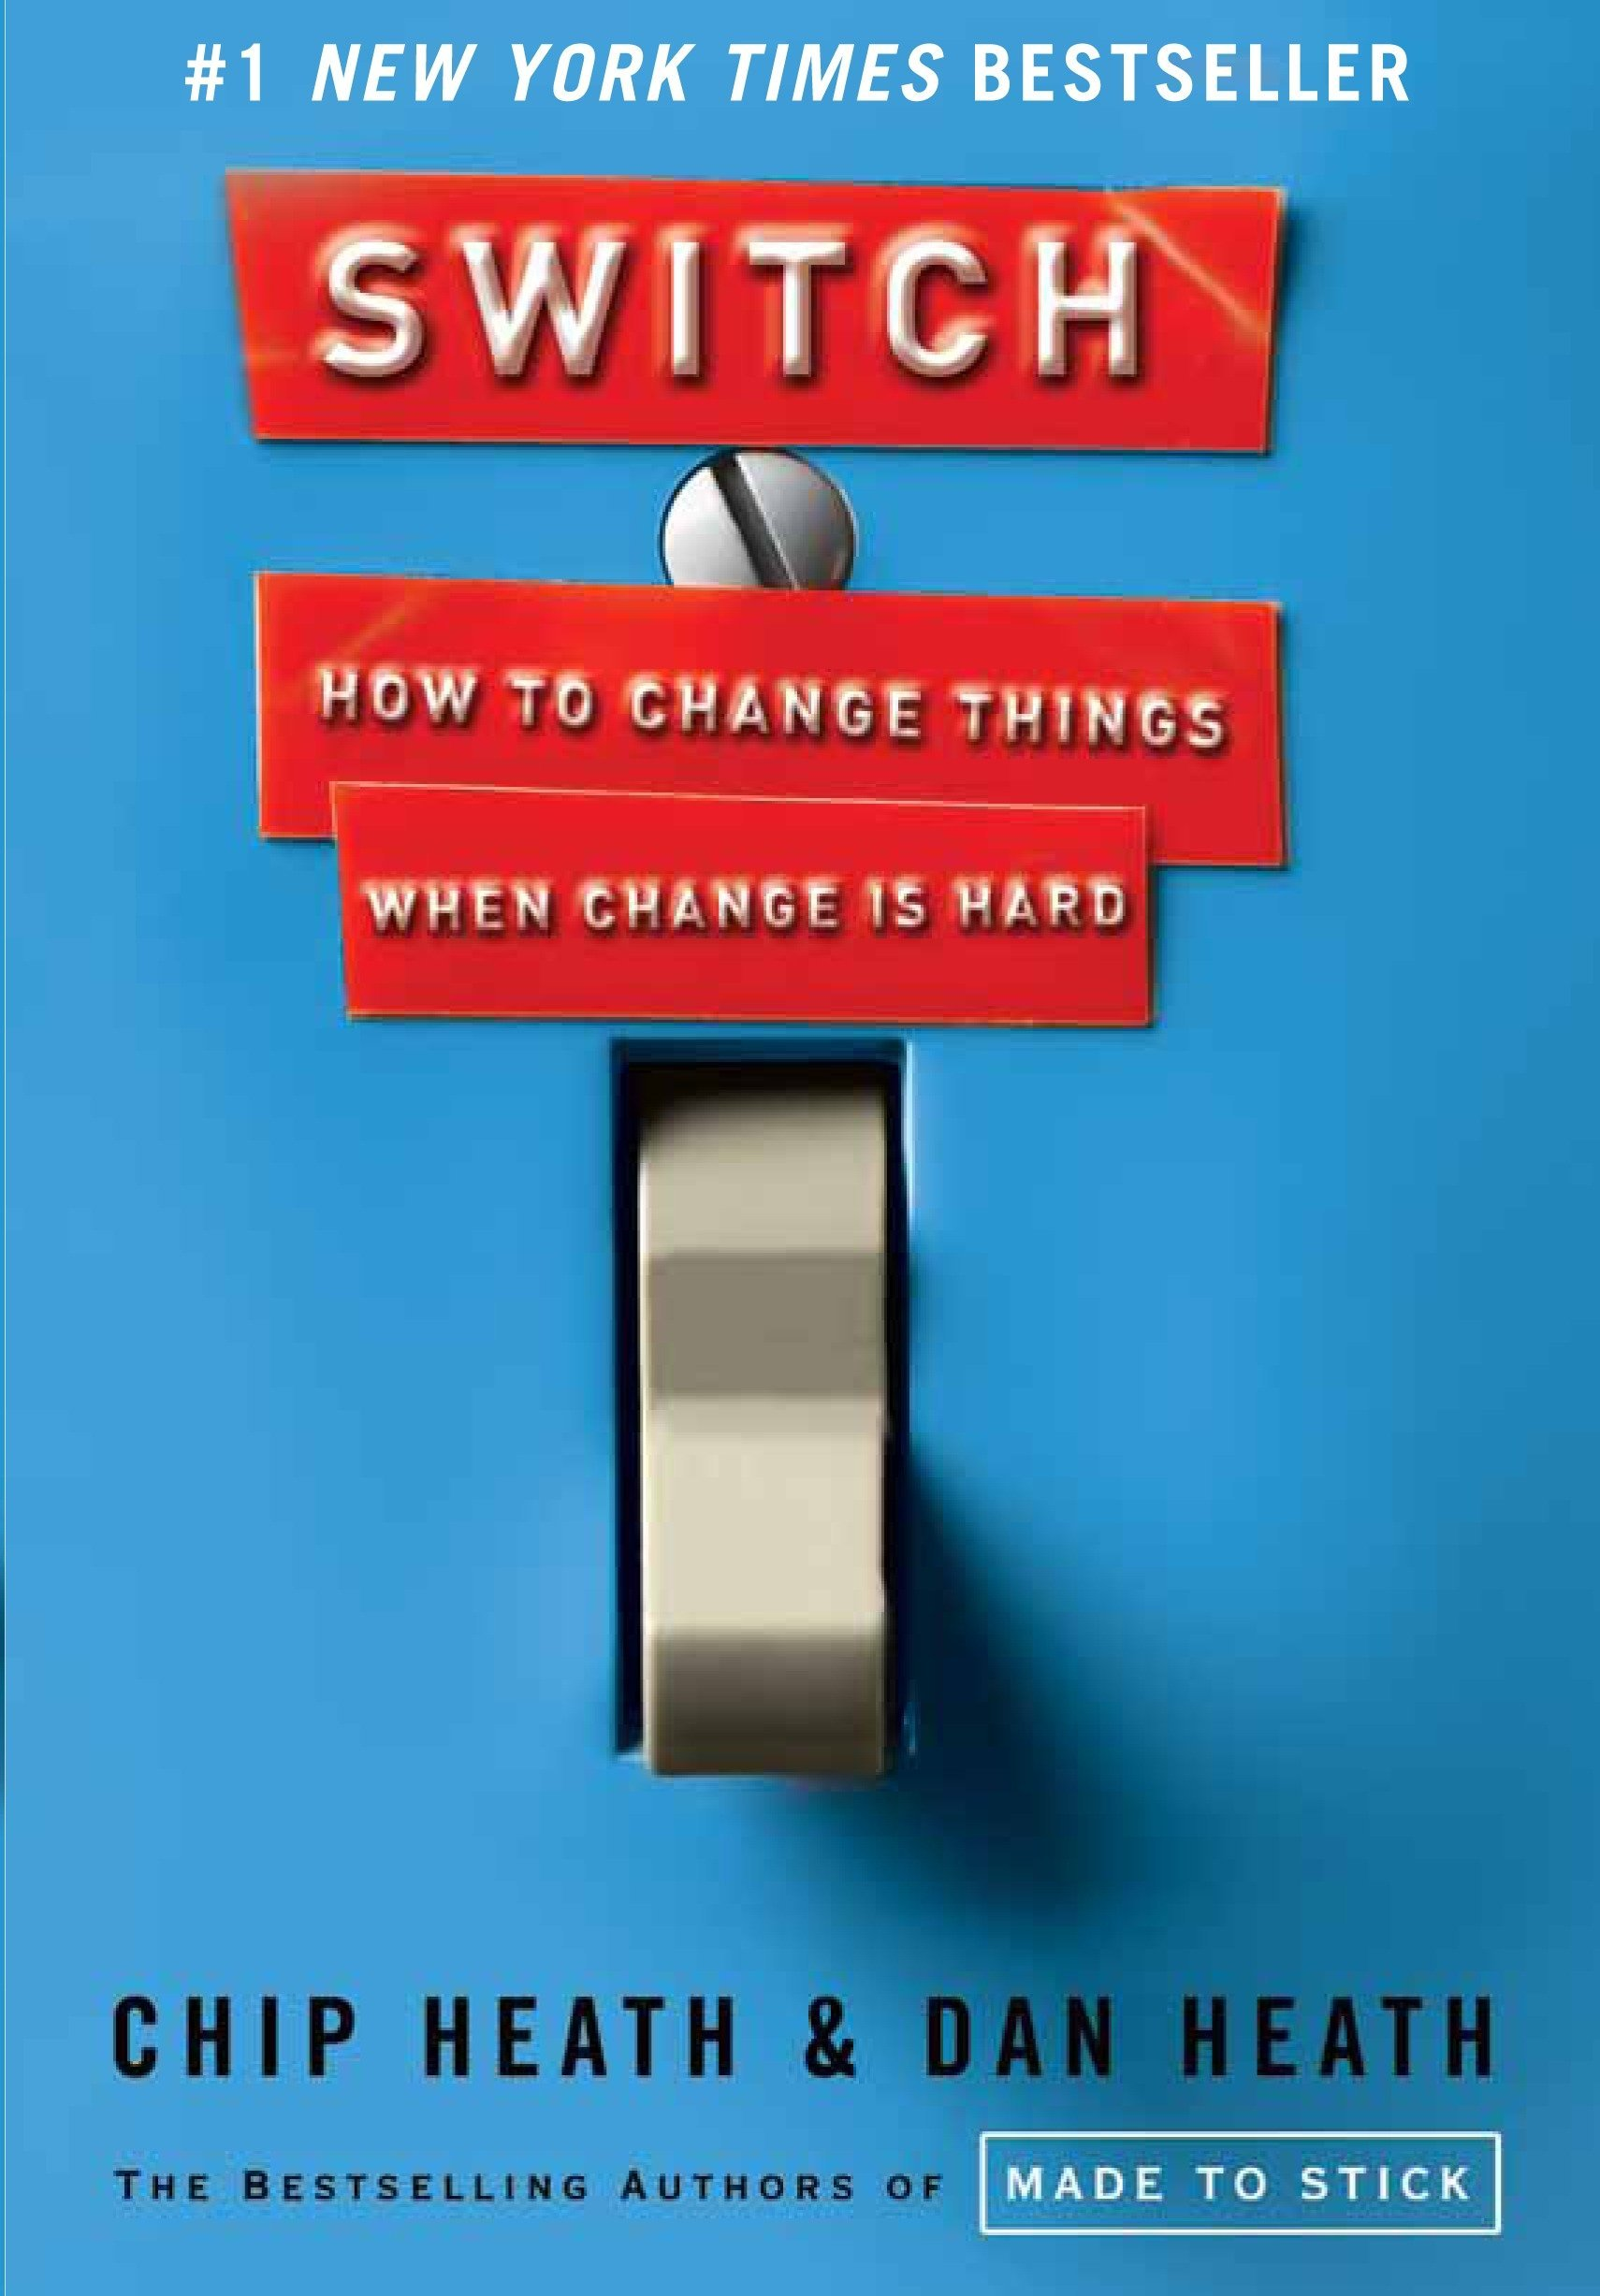 Mindset book - Switch: How to Change Things When Change is Hard by Chip Heath and Dan Heath.